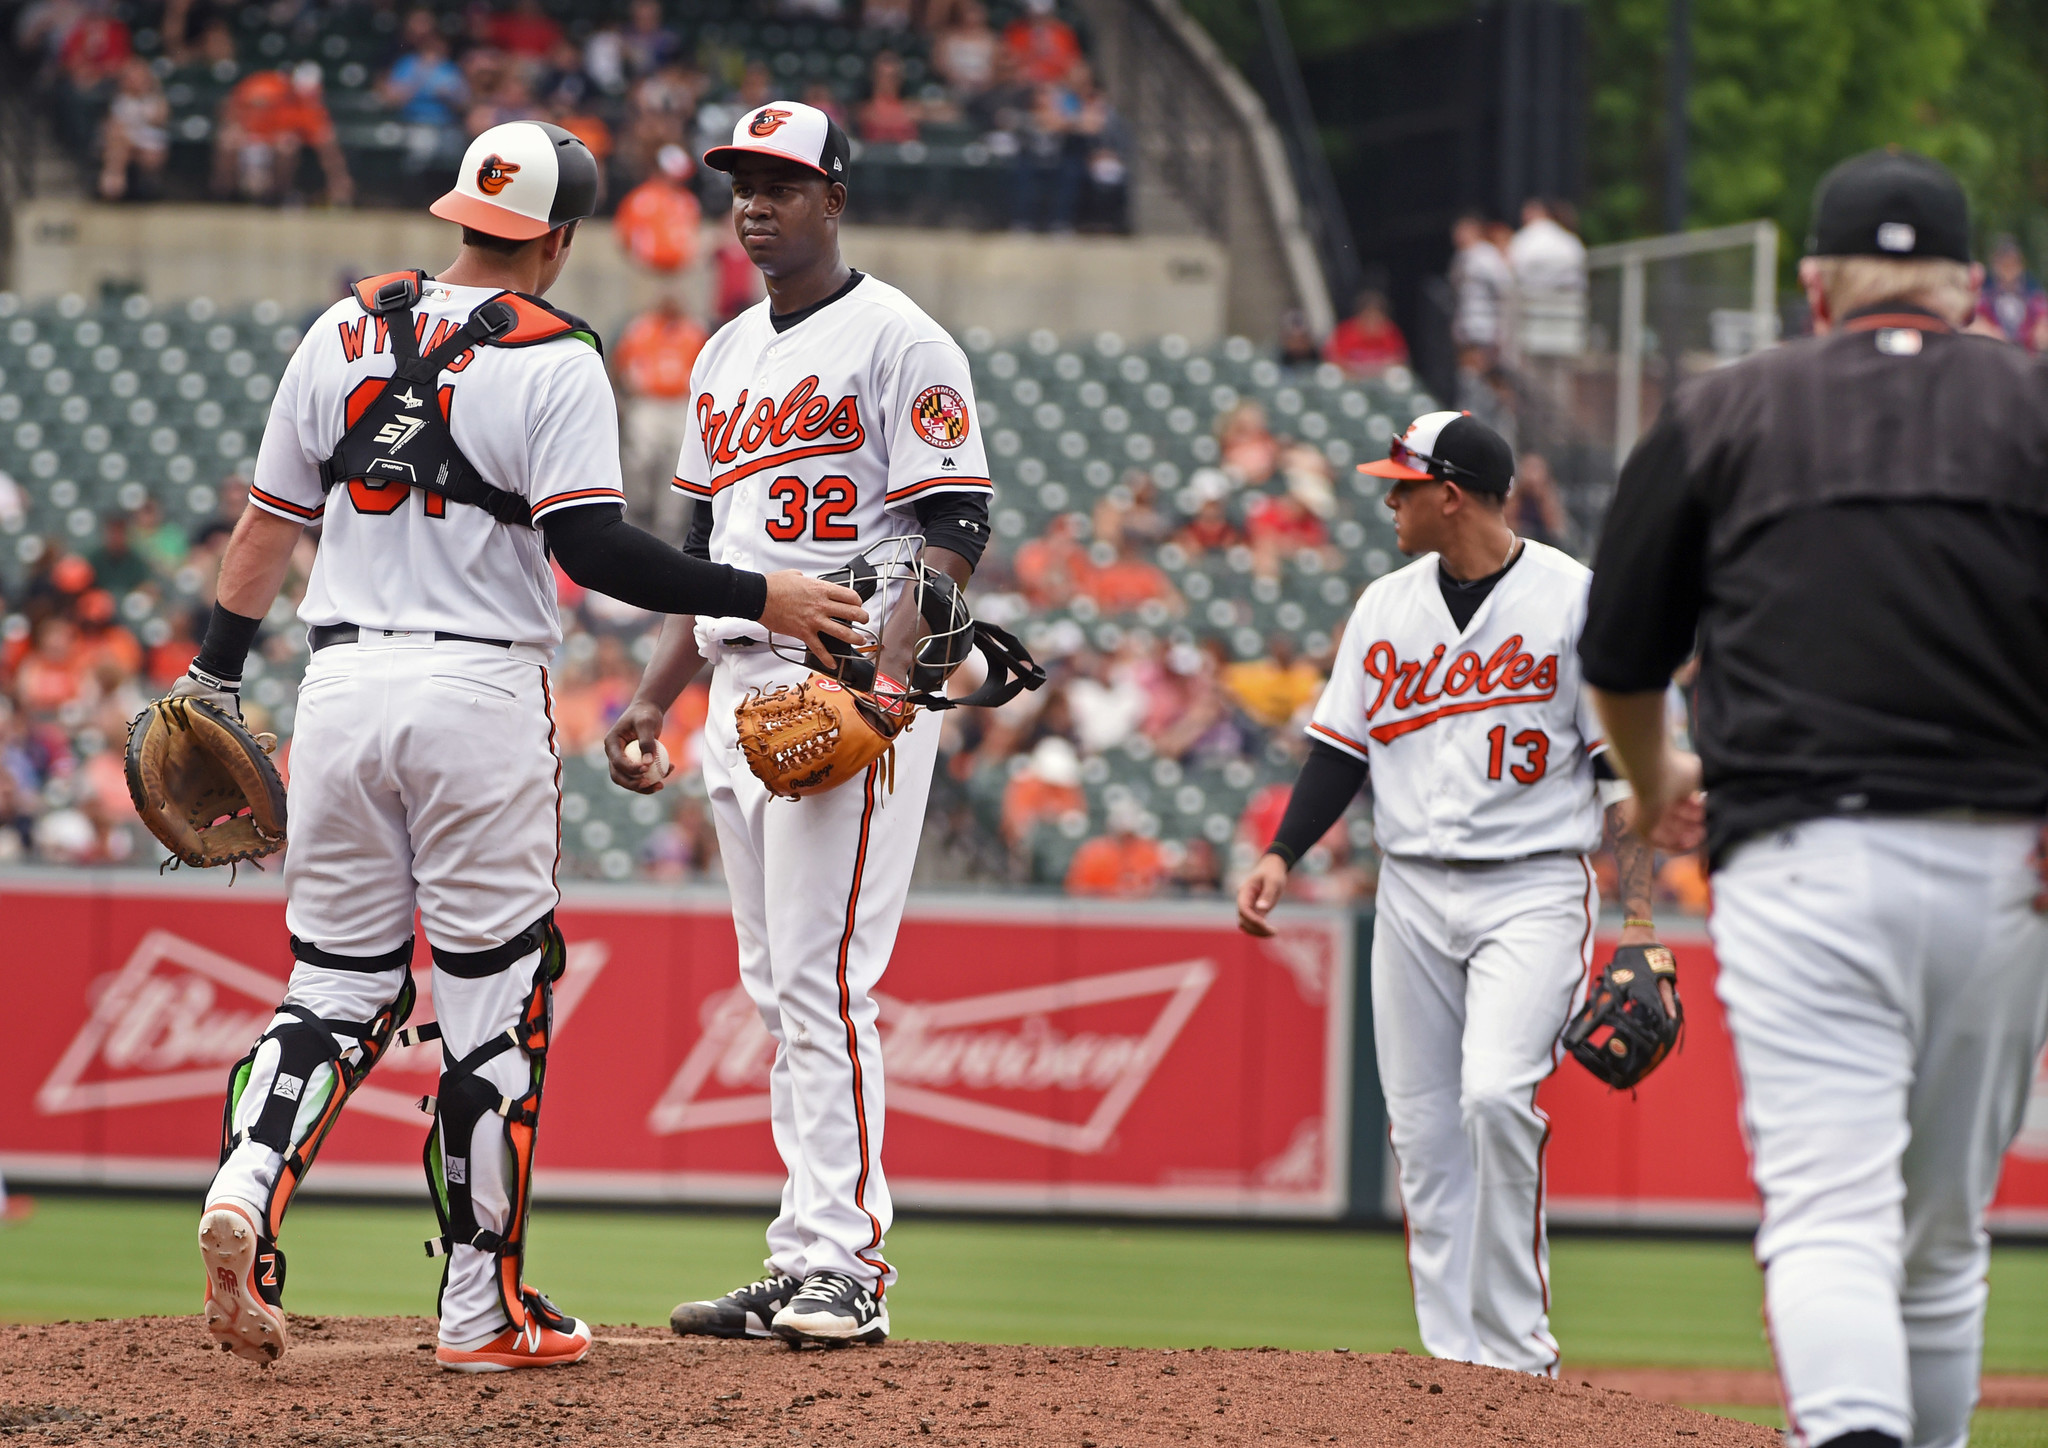 Bal-orioles-rewind-looking-back-at-wednesday-s-to-the-red-sox-20180613